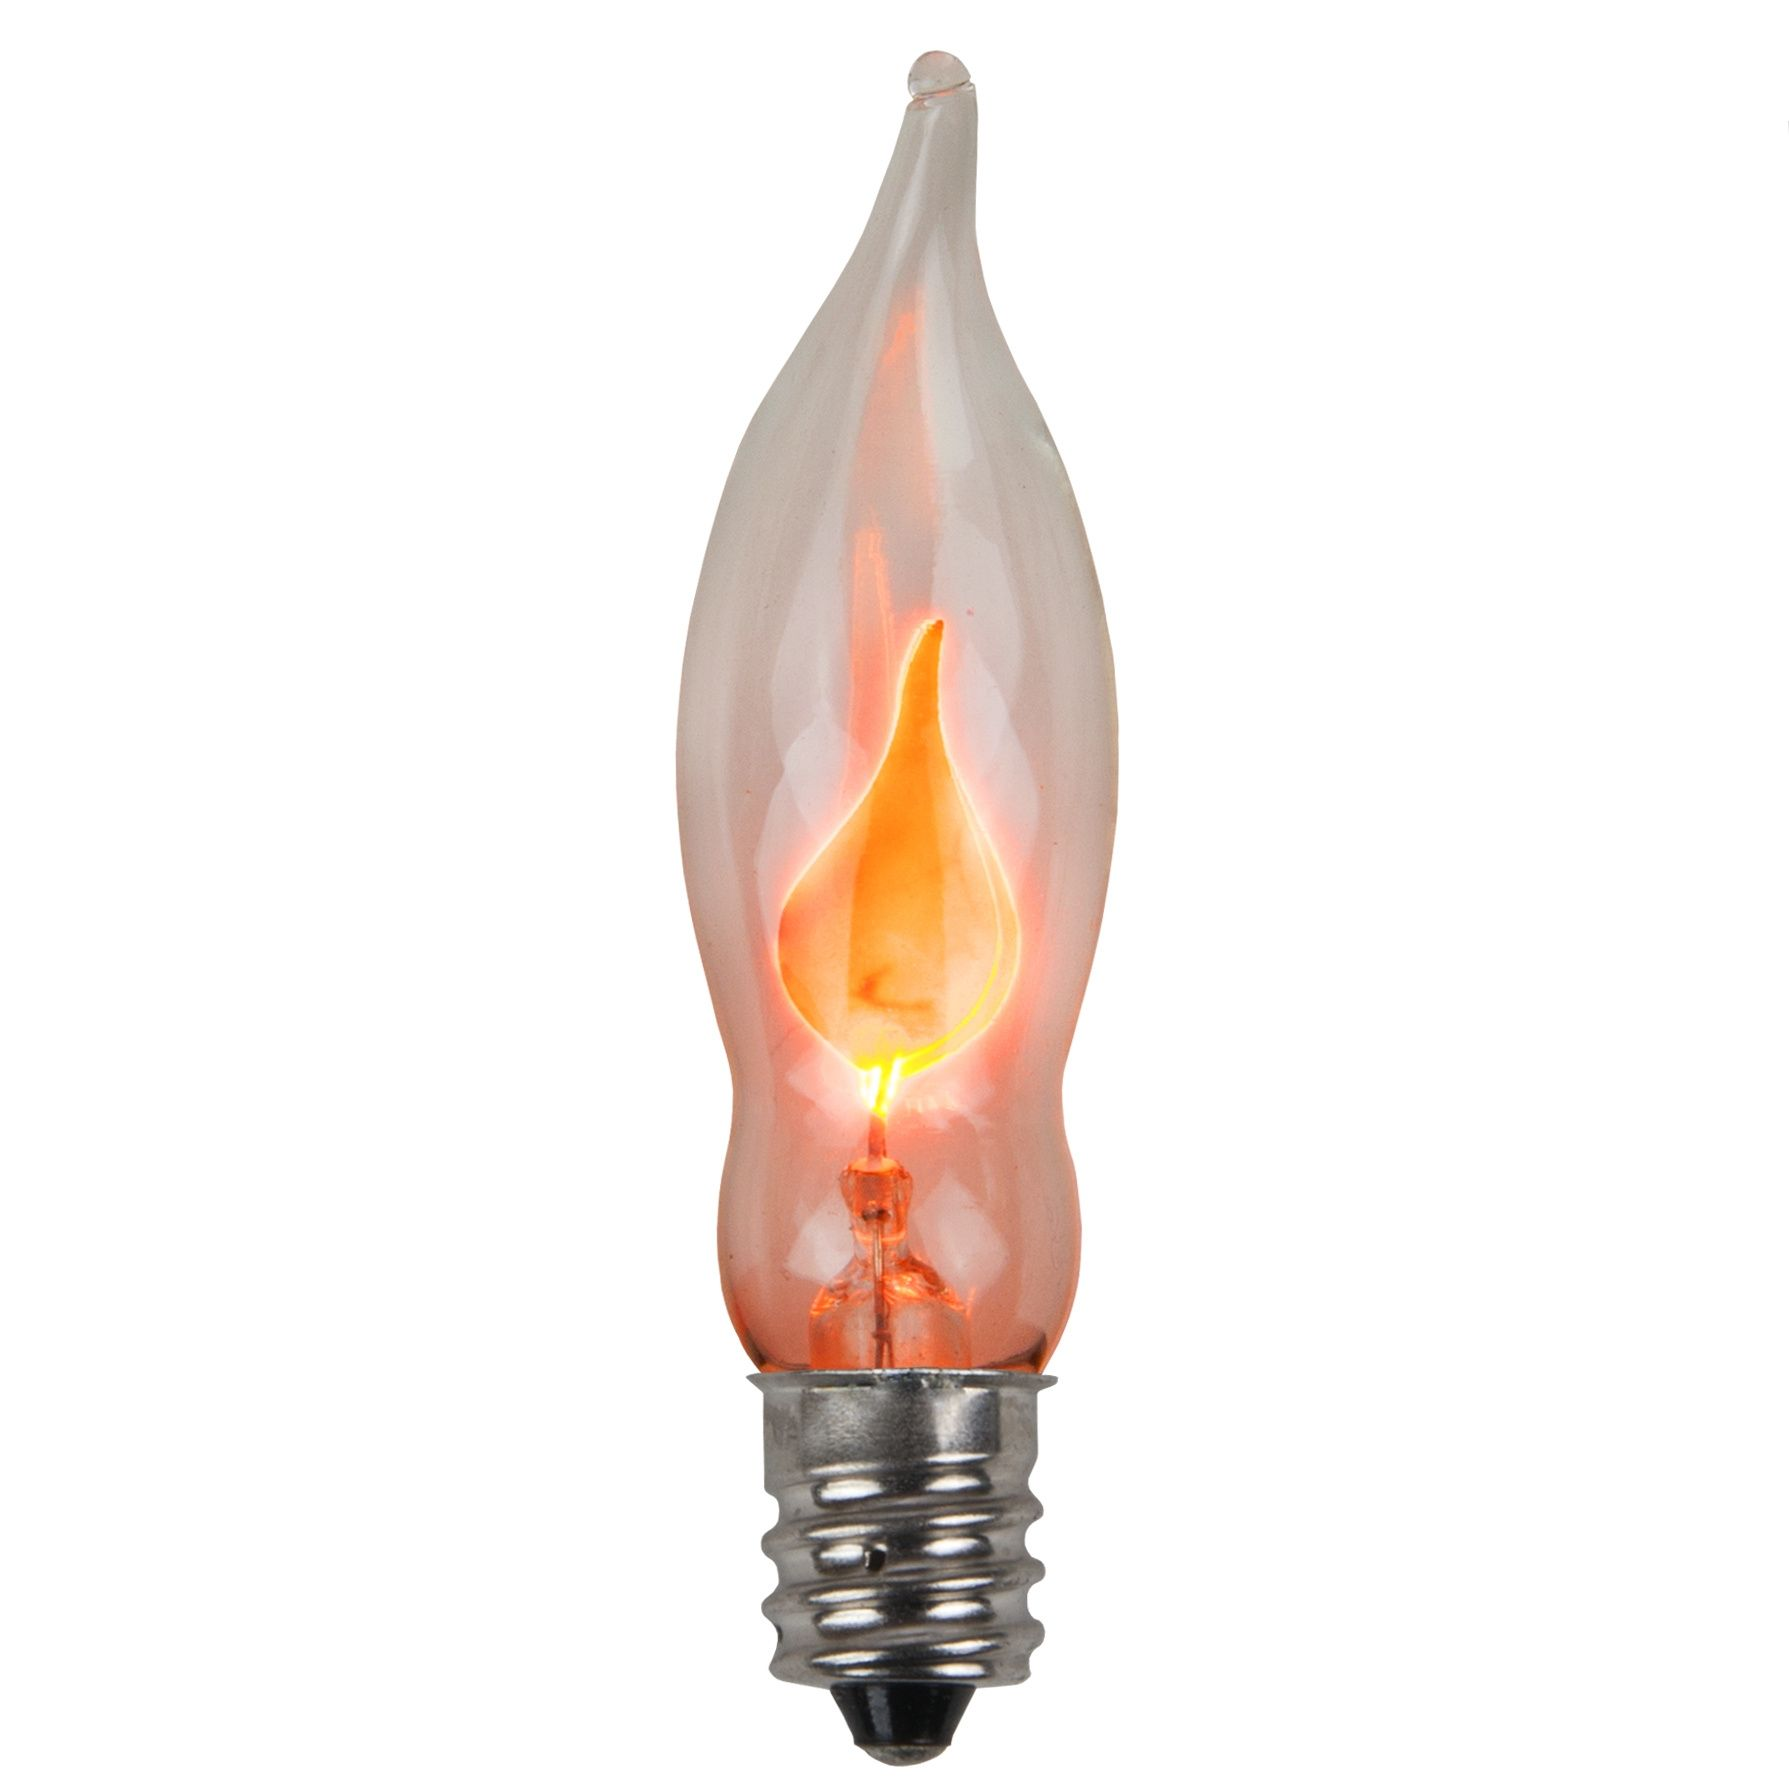 Flicker Flame Outdoor Light Bulbs Part 51